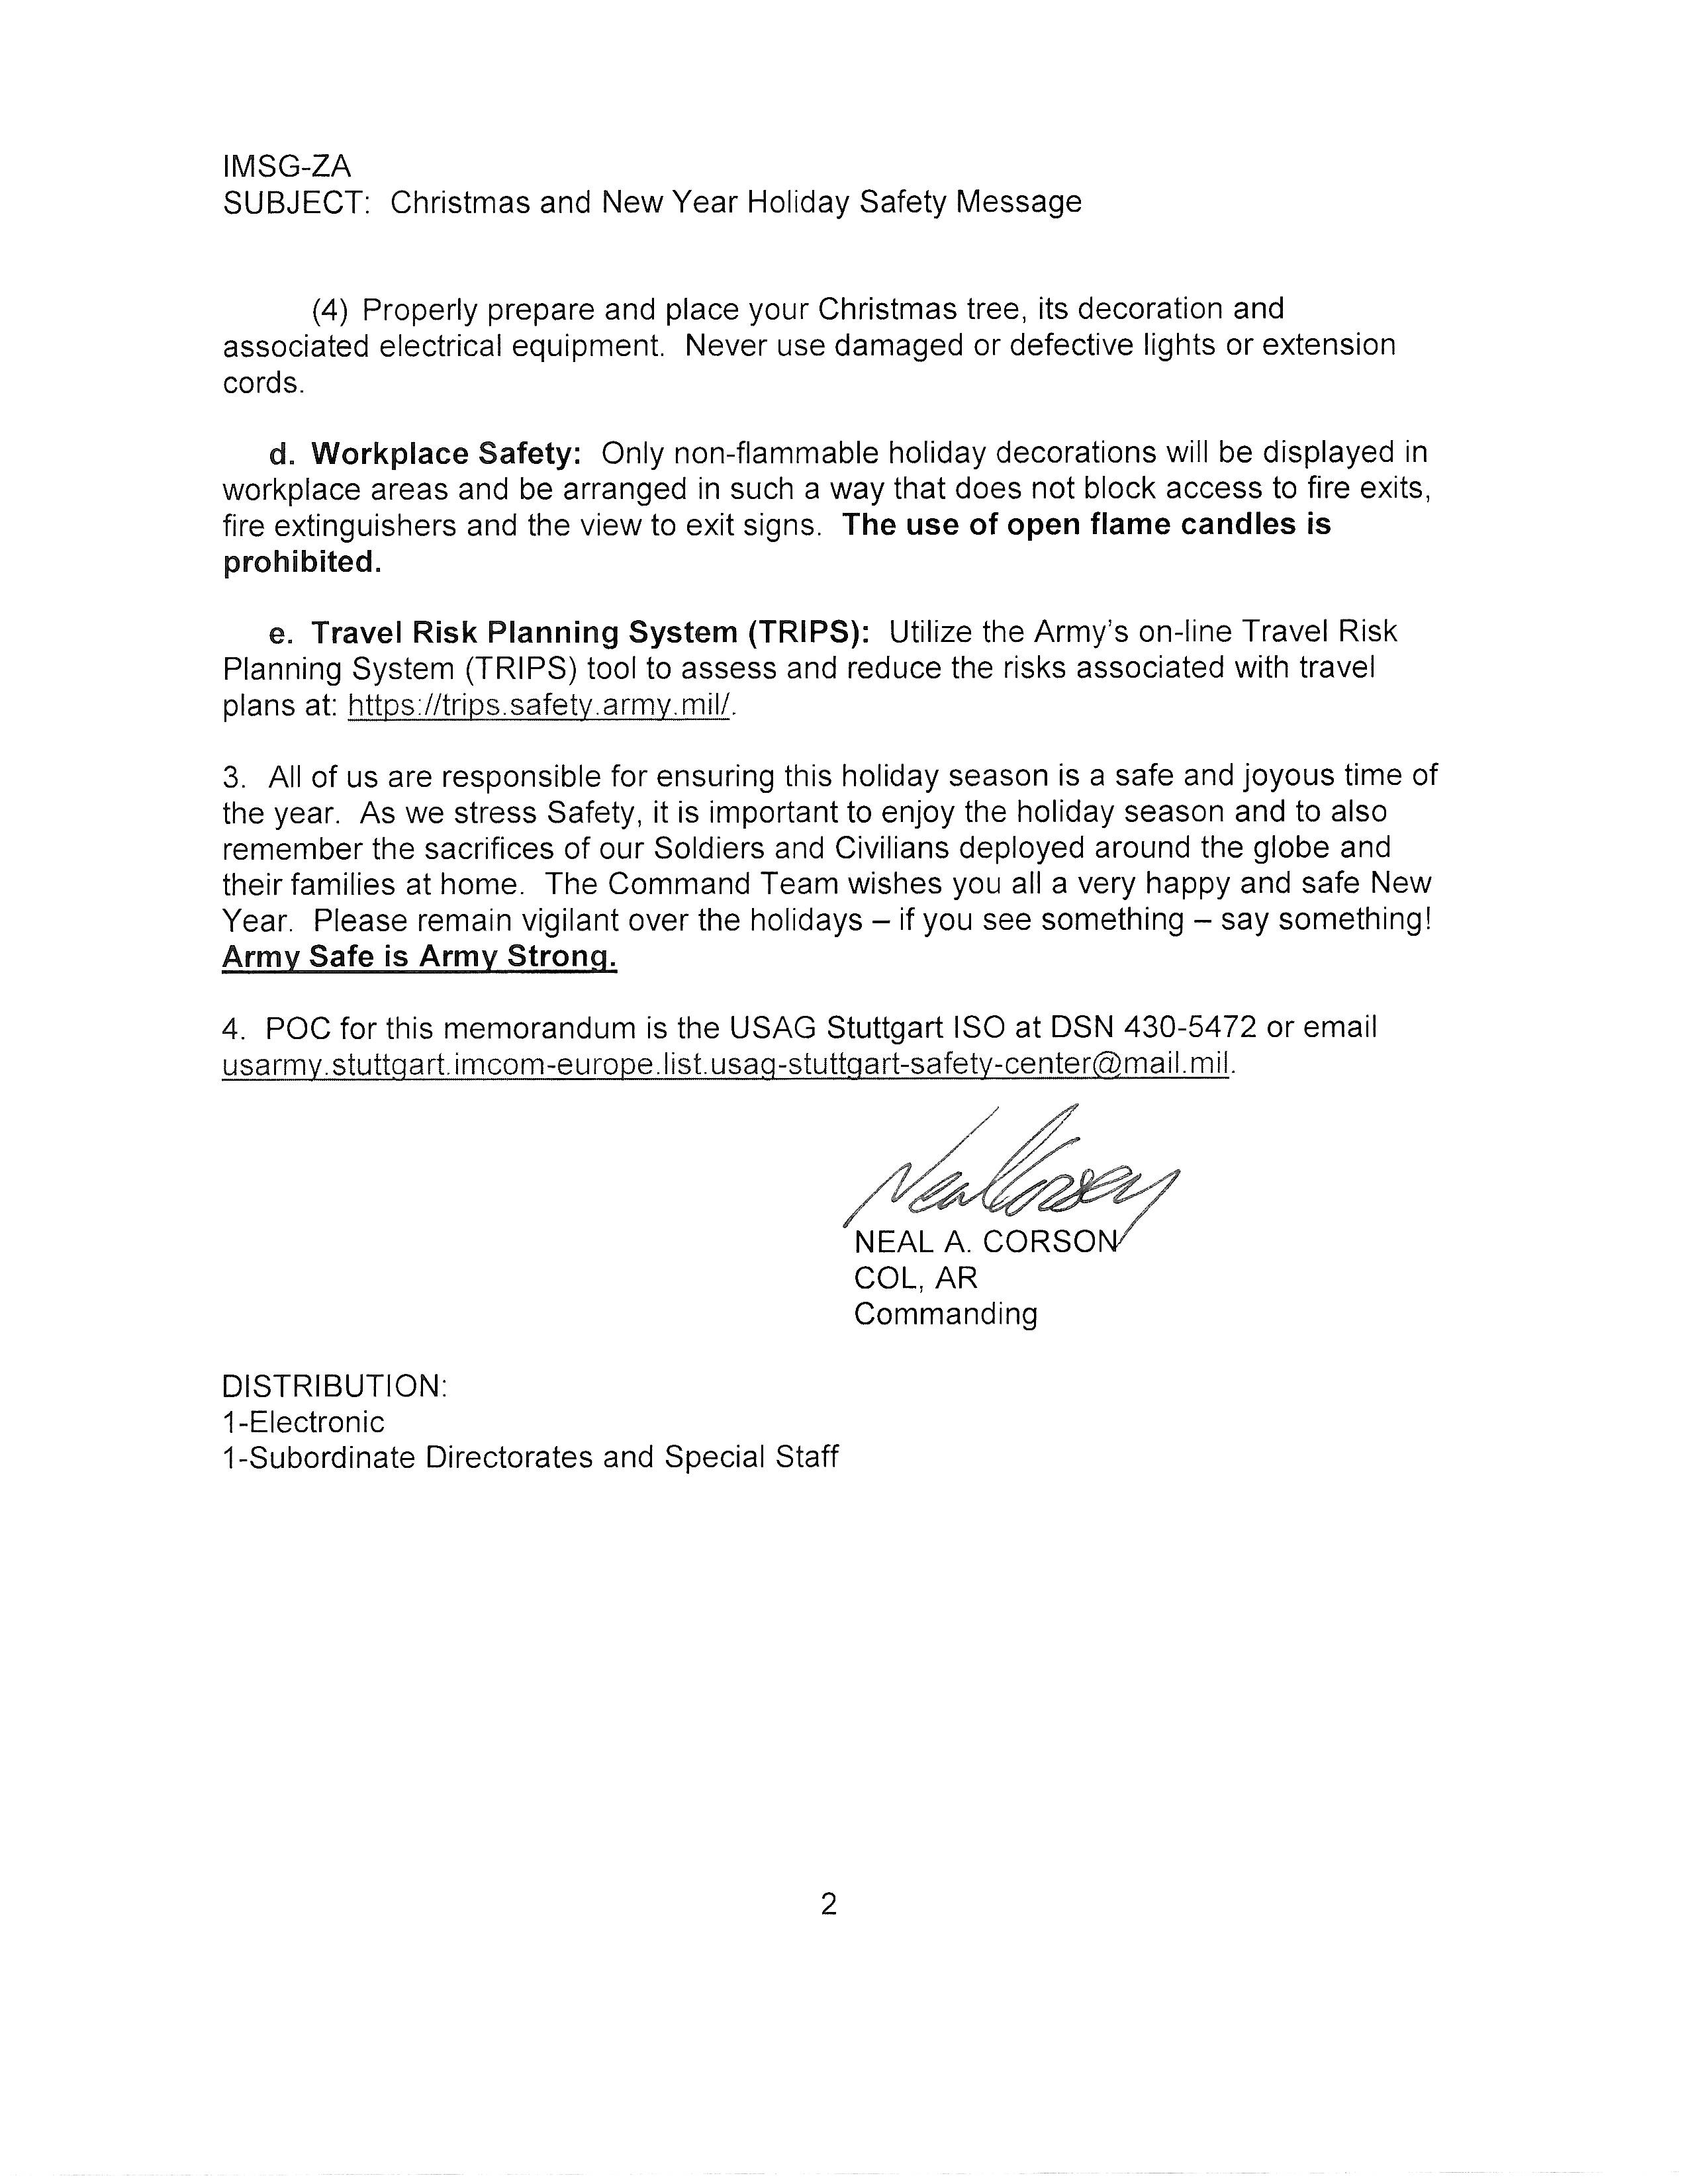 Holiday Safety Message from USAG Stuttgart Command Team ...